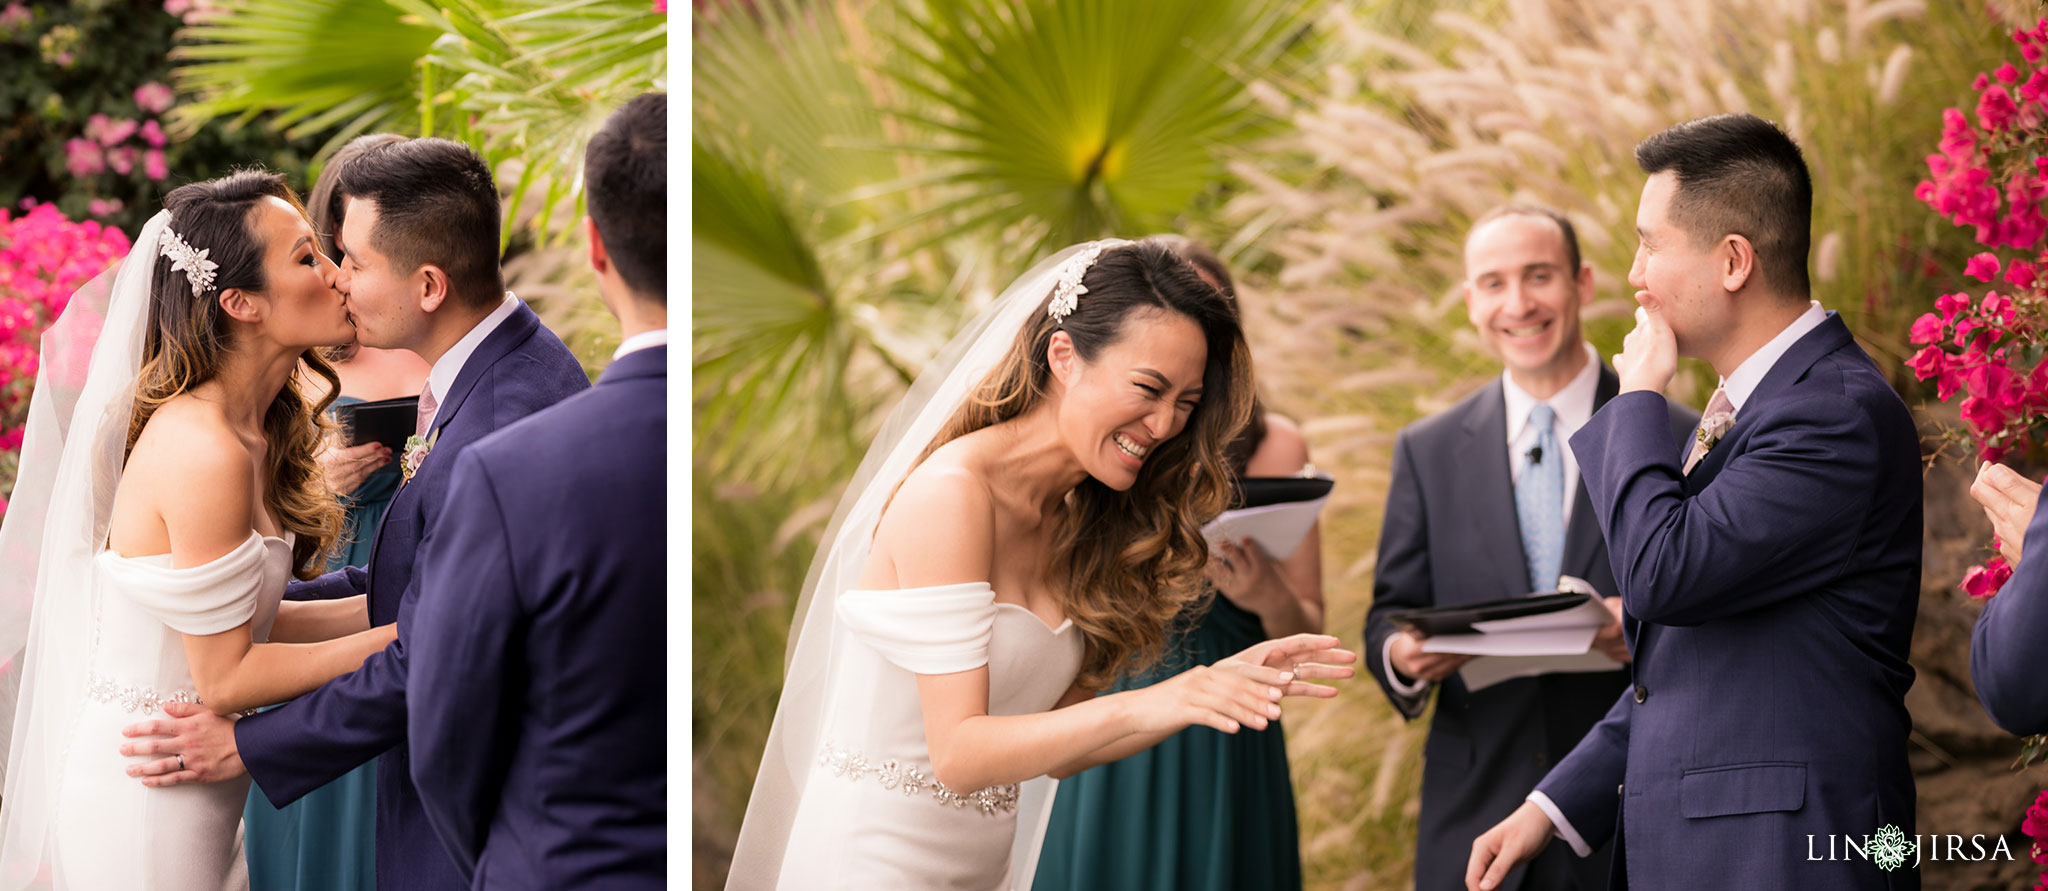 21 odonnell house palm springs wedding ceremony photography